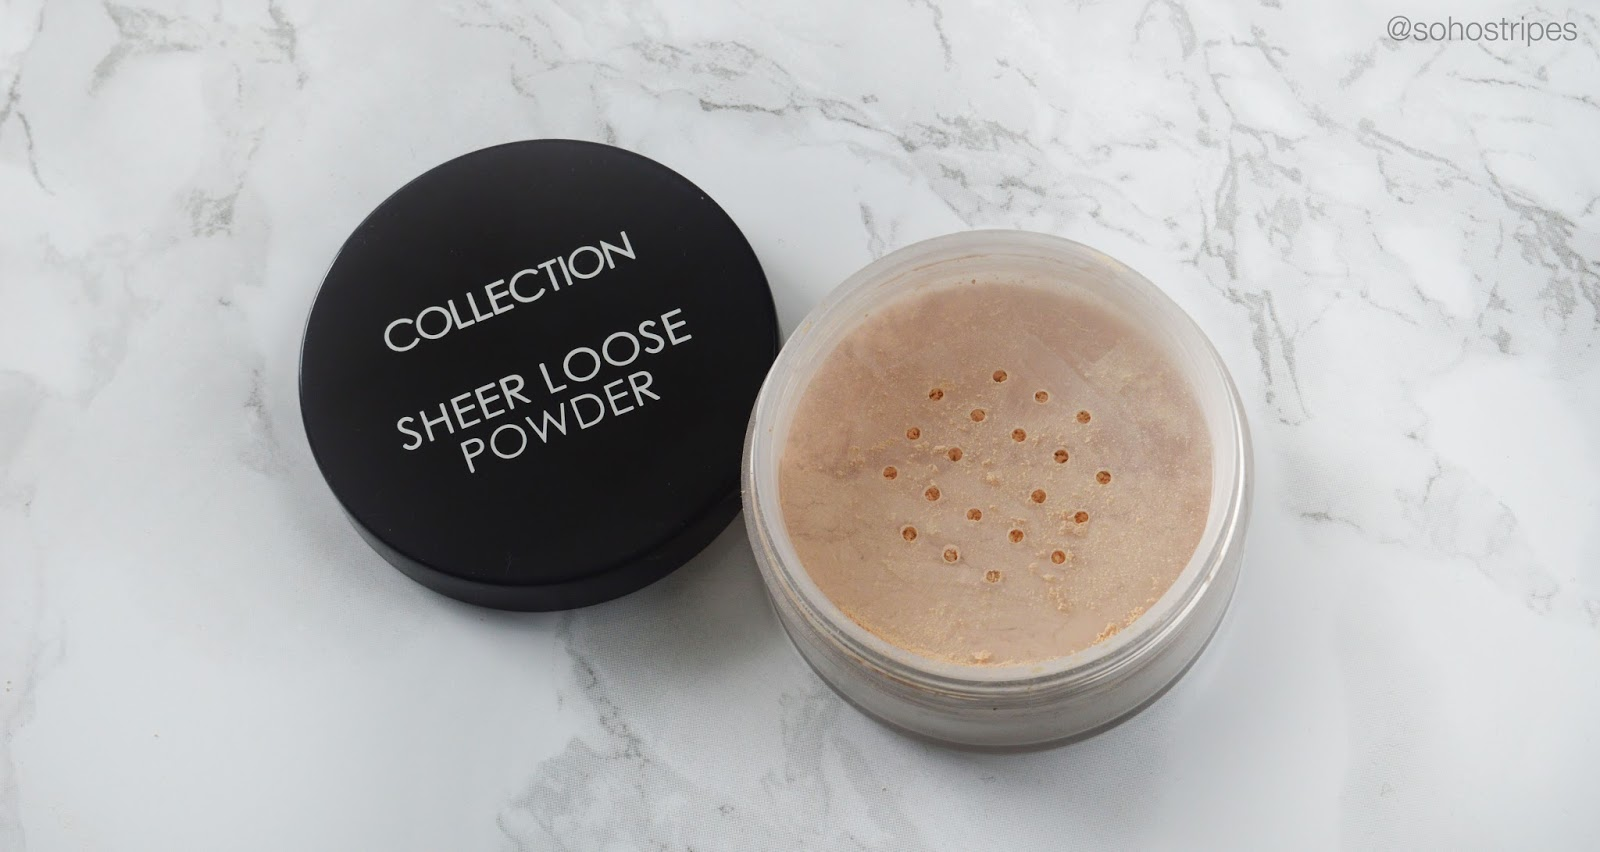 Collection Sheer Loose Powder Translucent